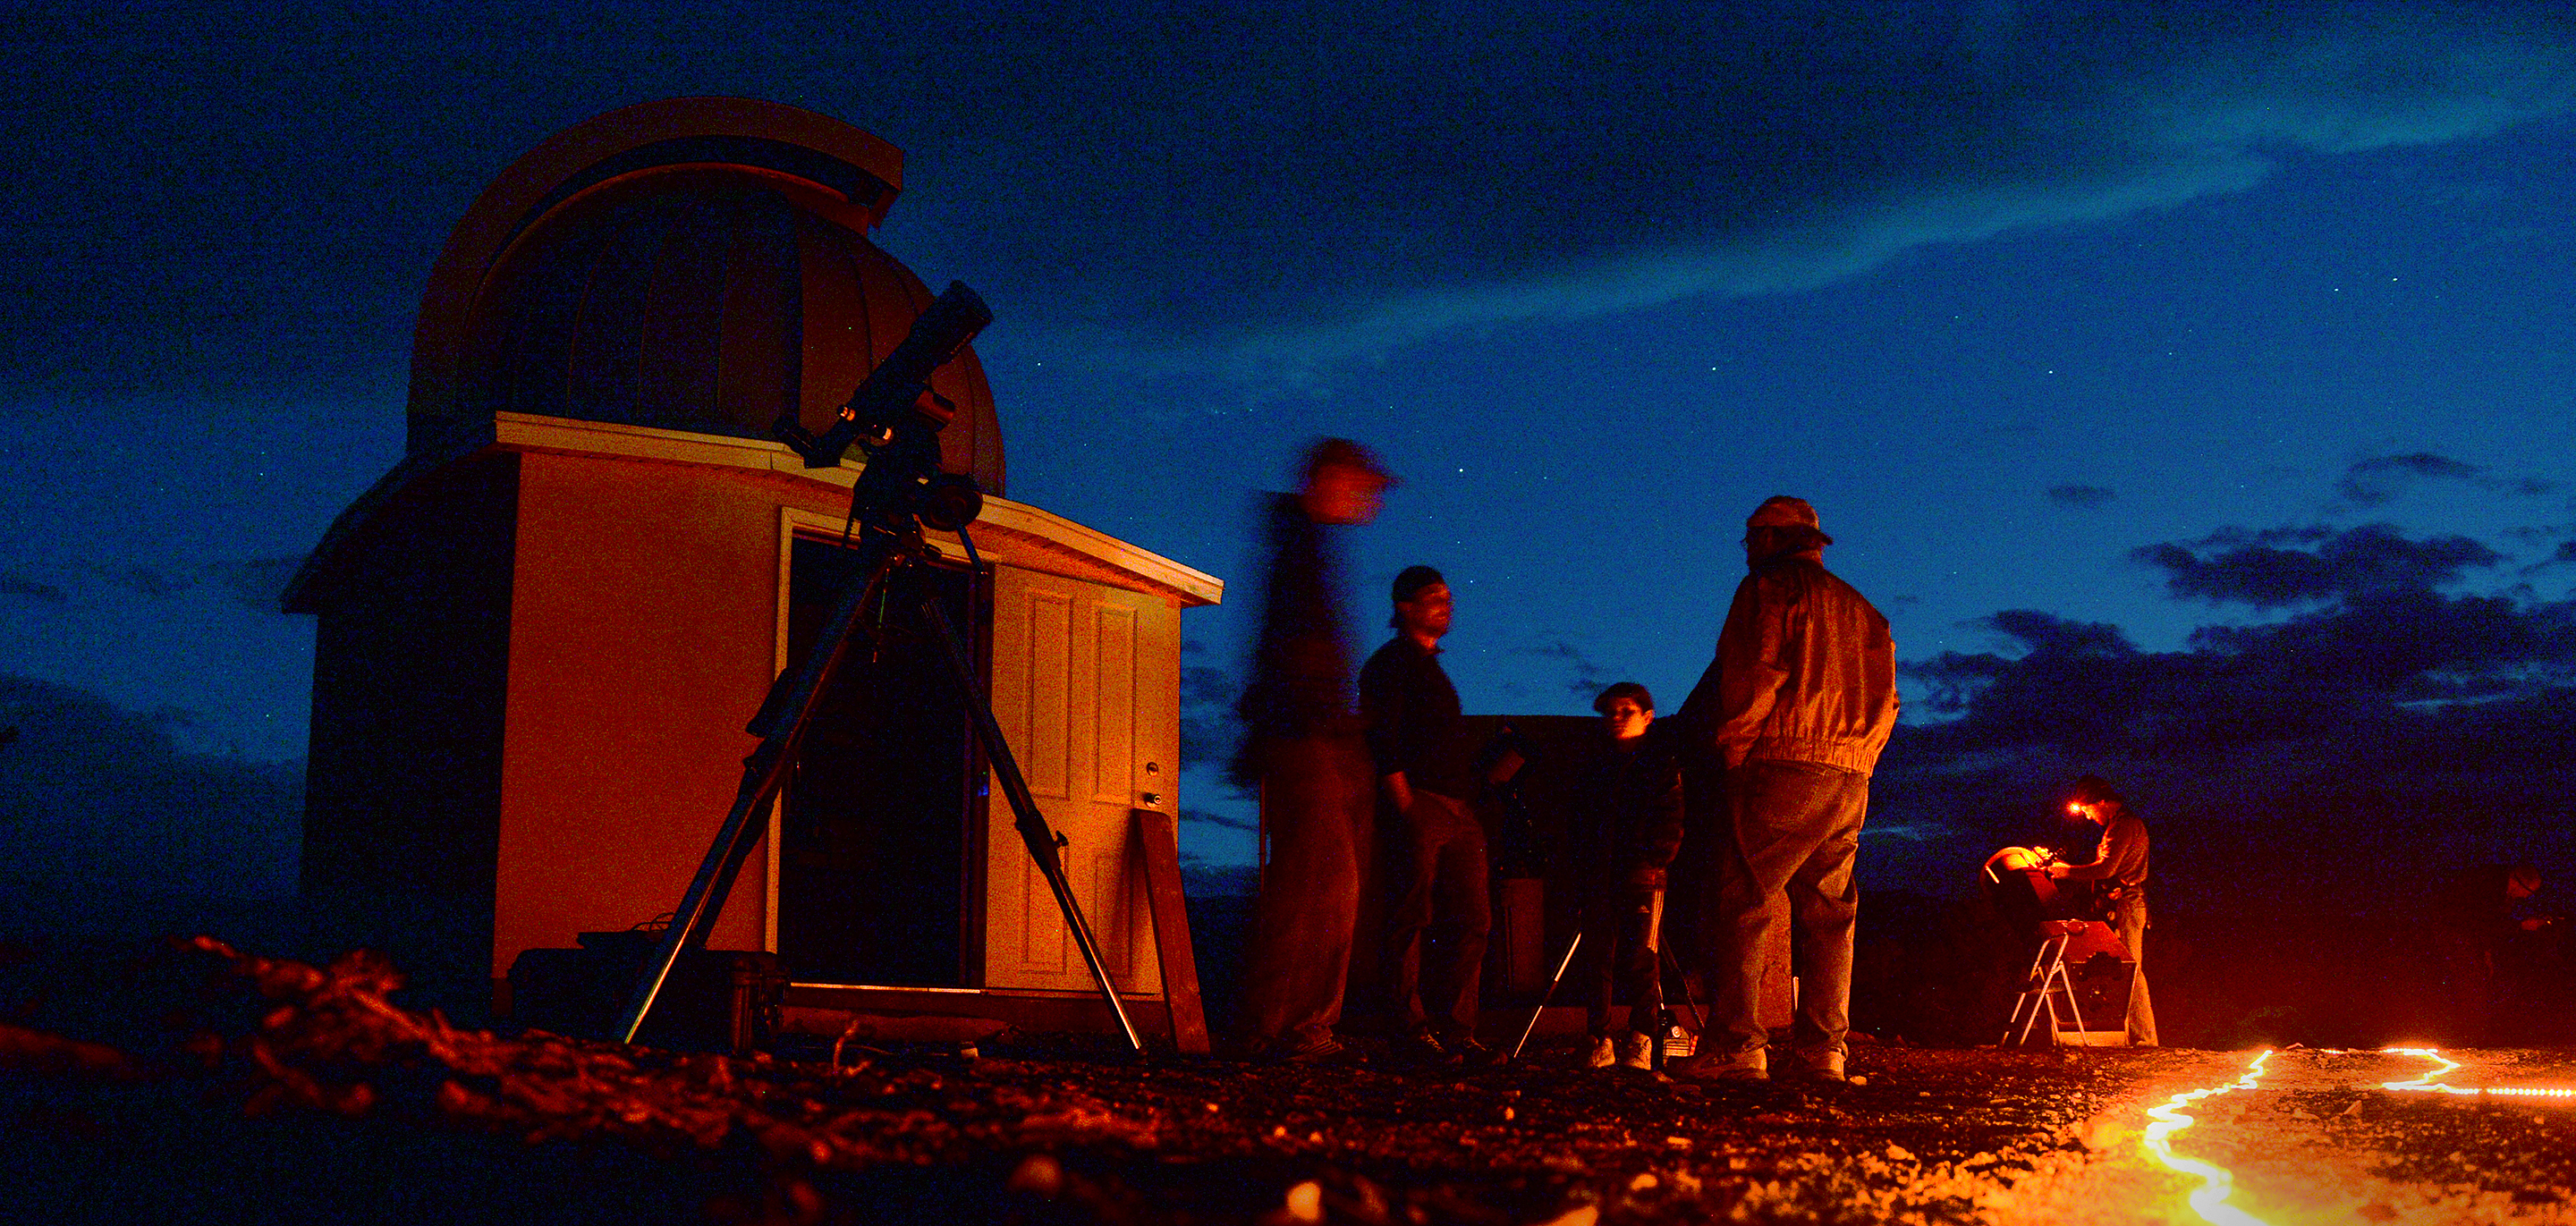 (Leah Hogsten  |  The Salt Lake Tribune) Torrey residents discuss the town's Dark Sky Community application while viewing planets and constellations during the town's star party Oct., 19, 2017.